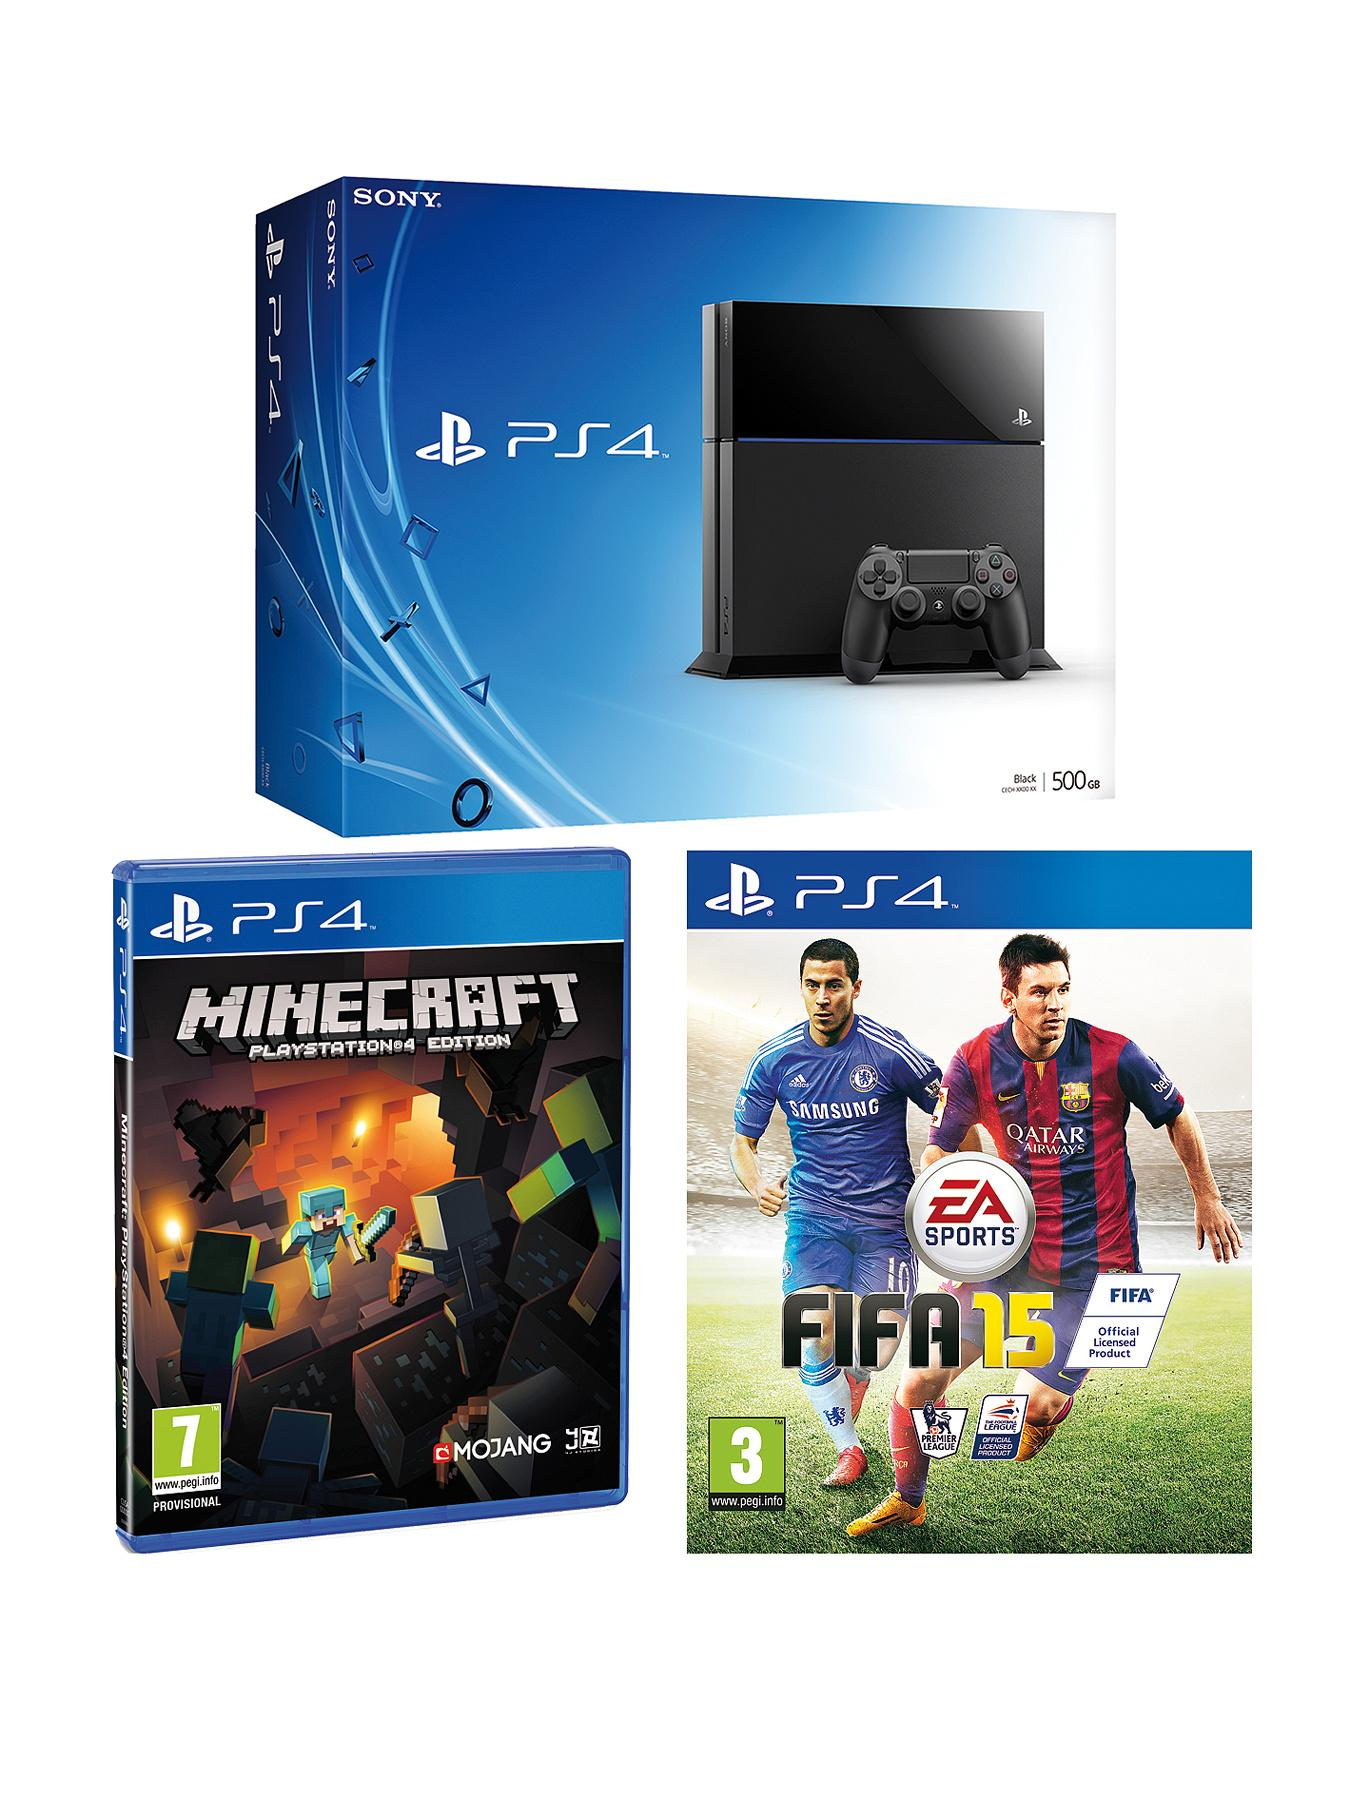 Playstation 4 Console with FIFA 15 and Minecraft